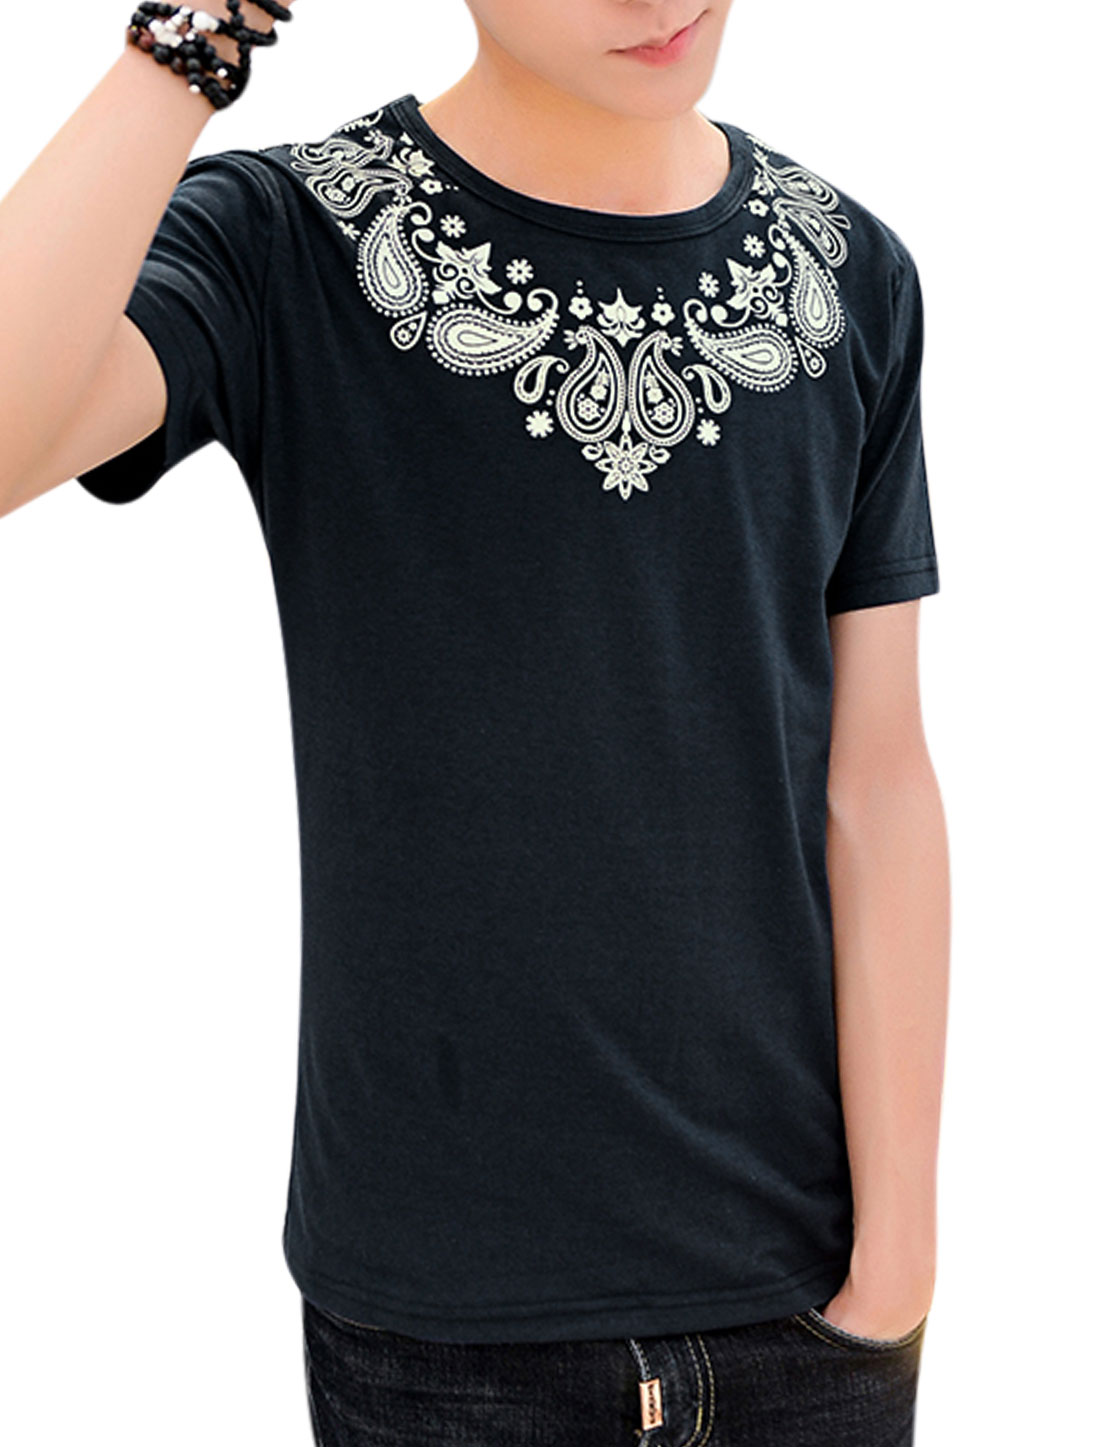 Men Short Sleeve Round Neck Novelty Print Casual T-Shirts Navy Blue M